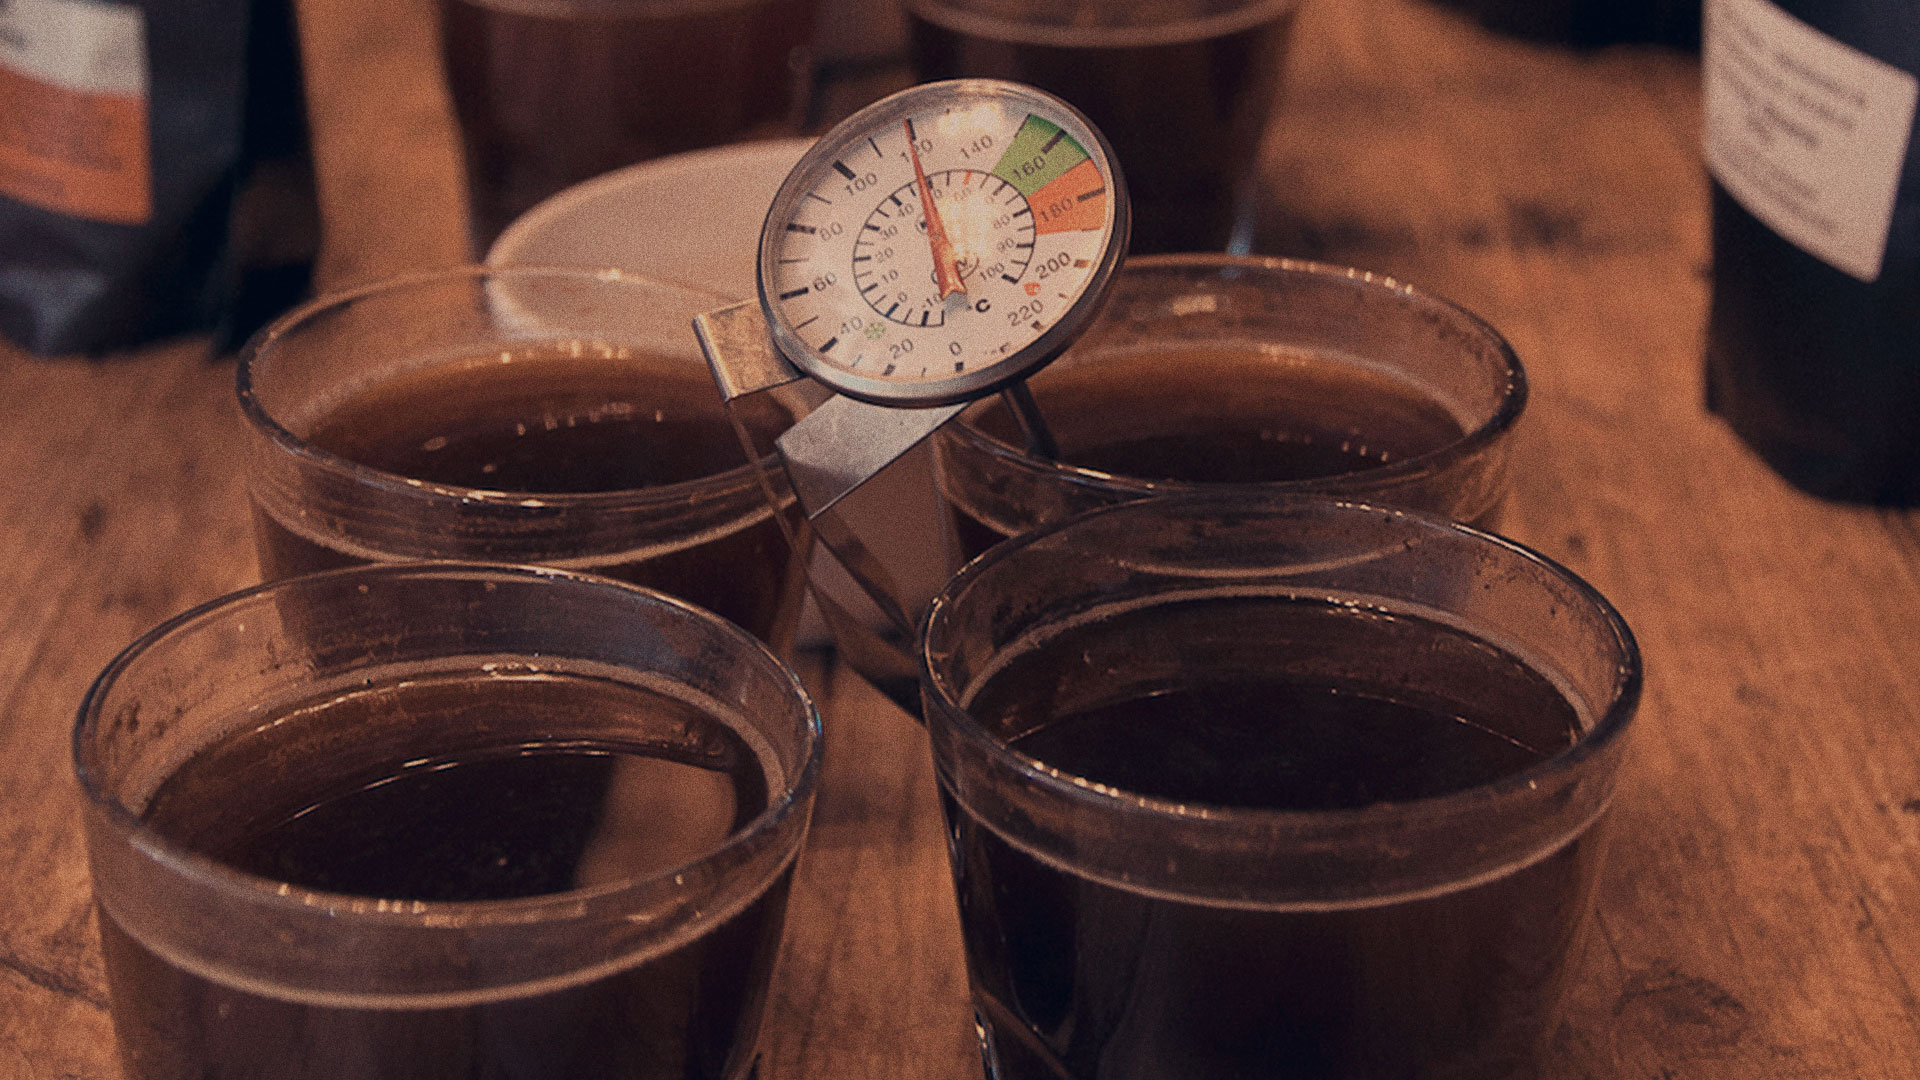 The Cupping Table: A Barista's Personal Journey of Discovery